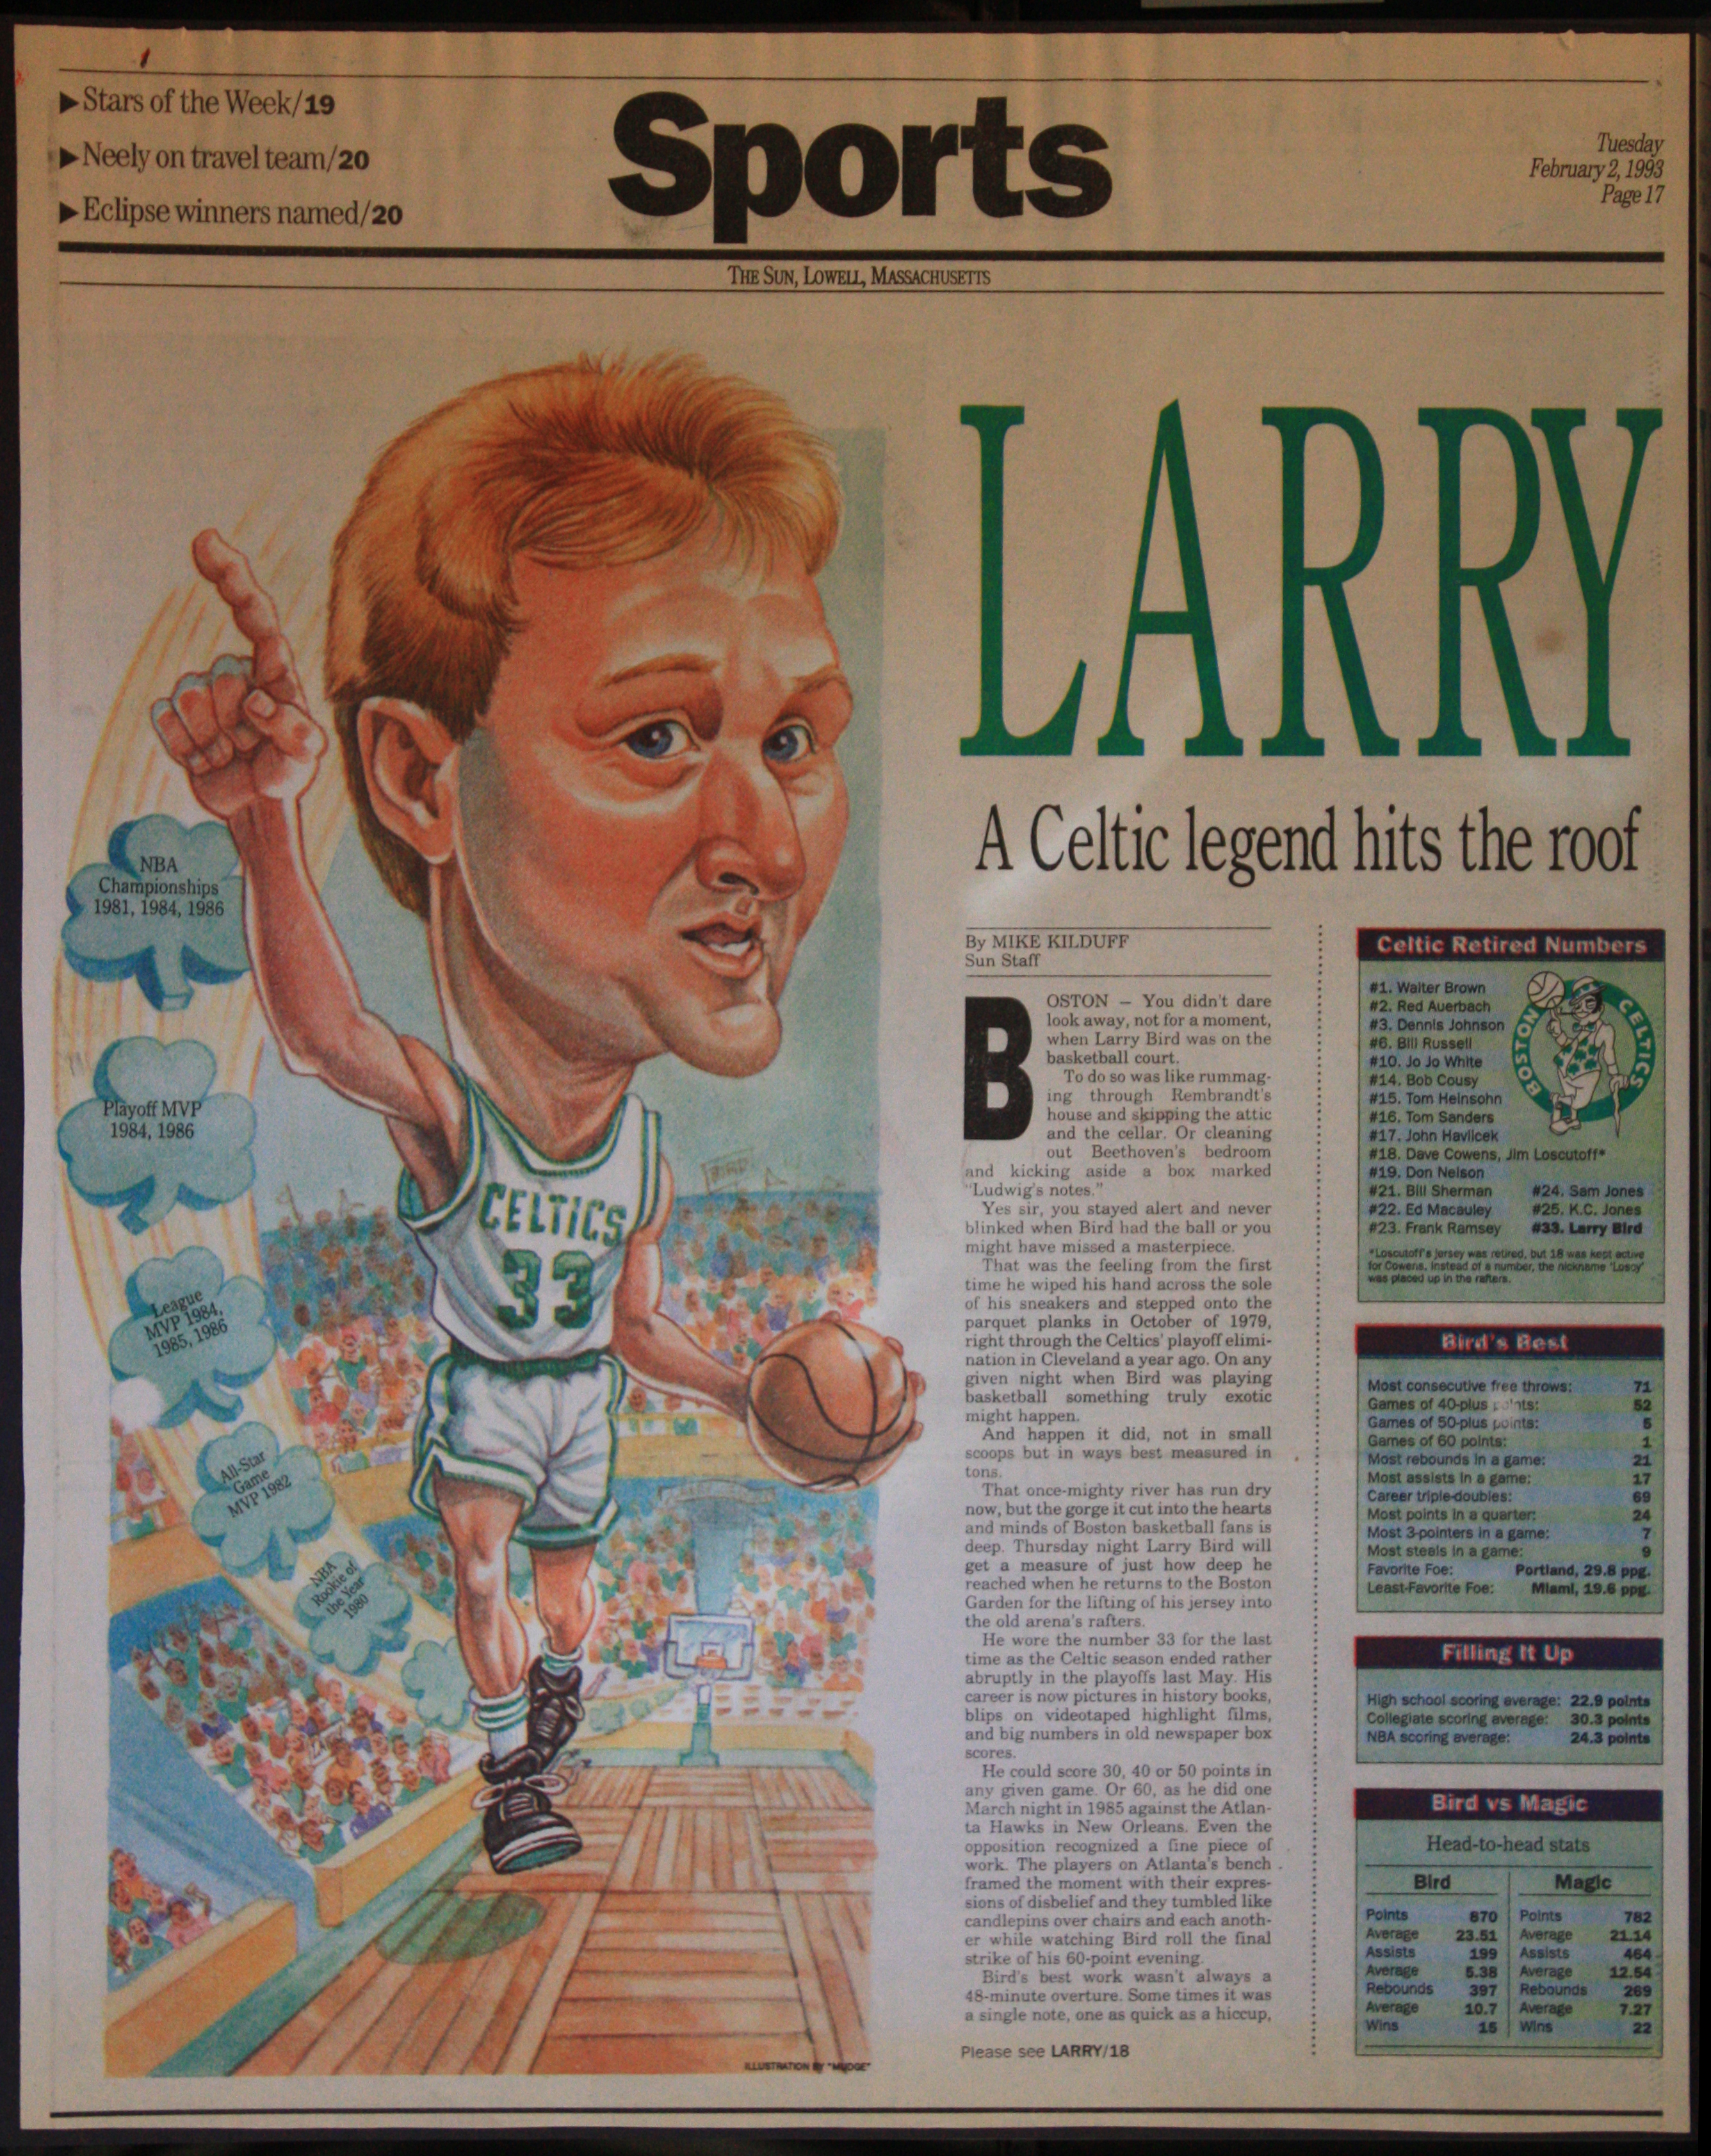 Vintage Larry Bird Newspaper Caricature.